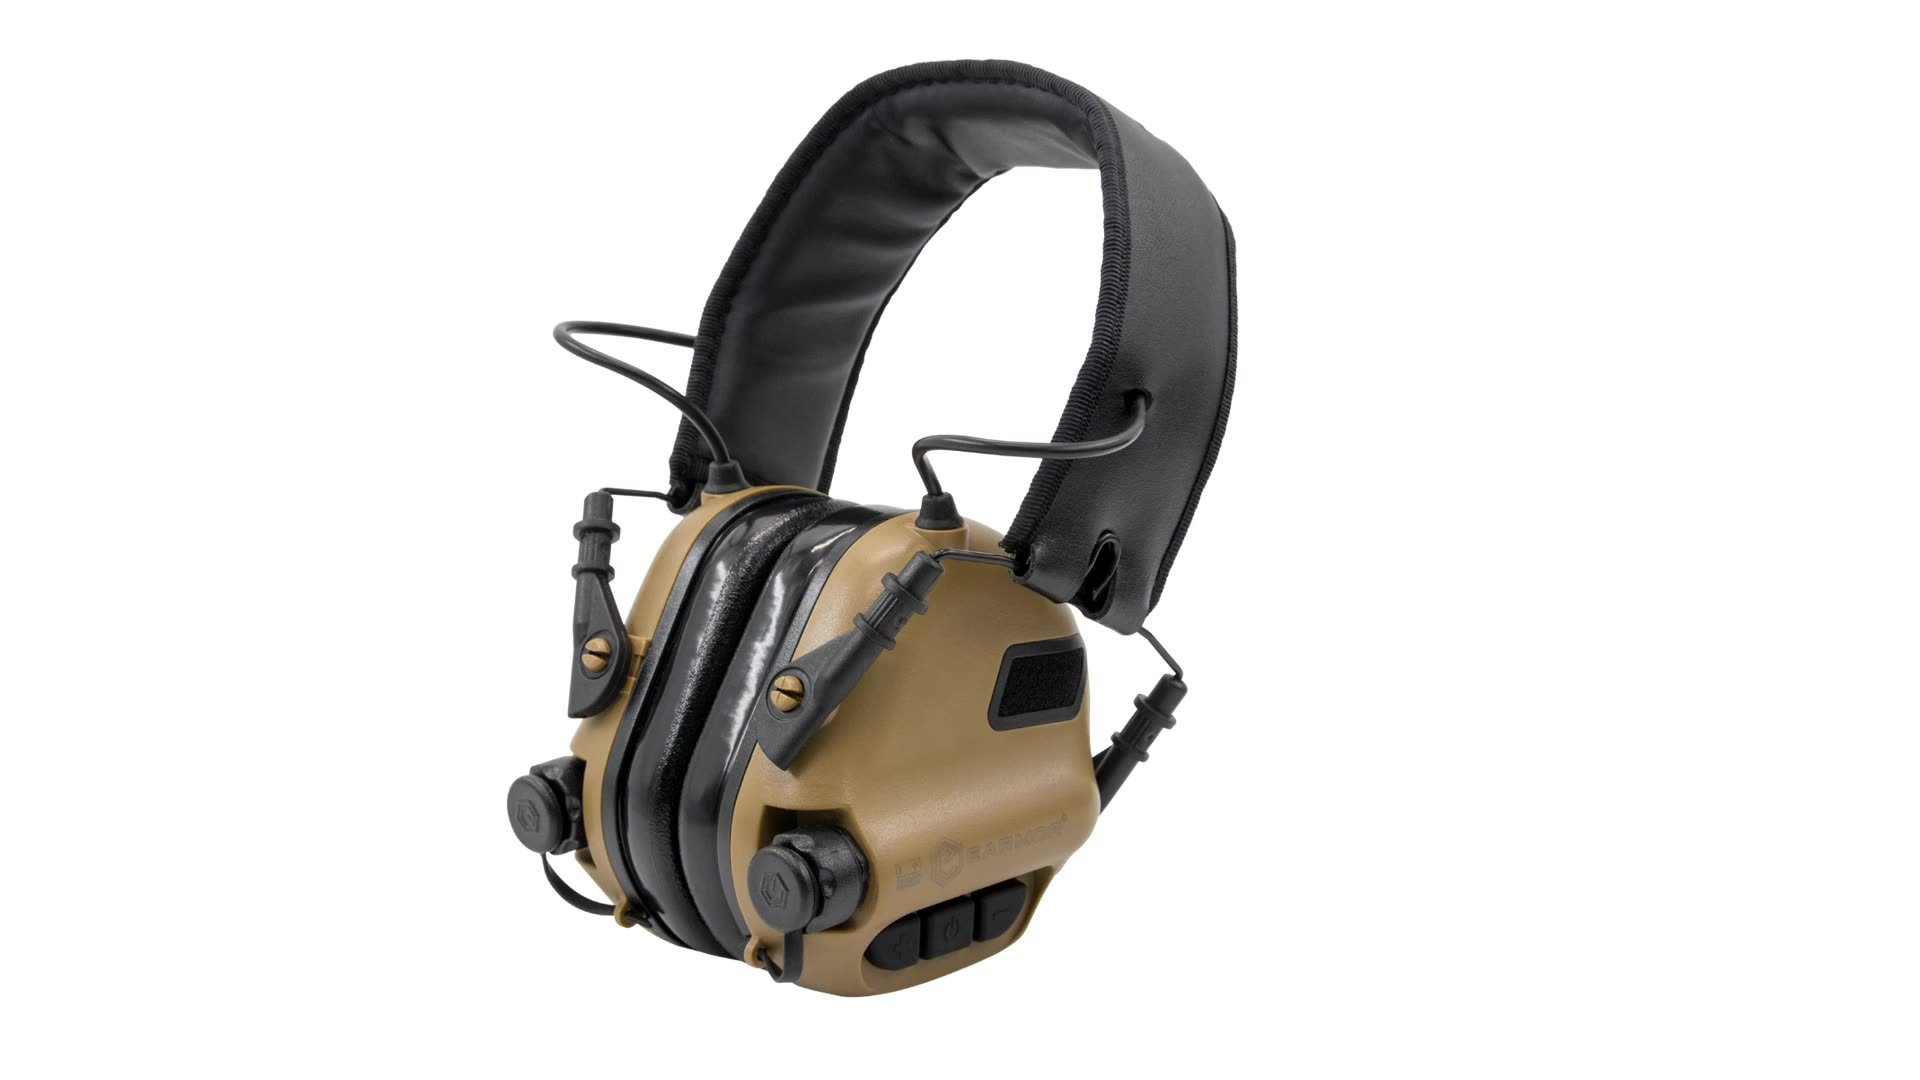 OPSMEN EARMOR M31 IPX5 Slim Low Profile Electronic Hearing Protector Range Shooting Hunting  Earmuff with AUX Input NRR22